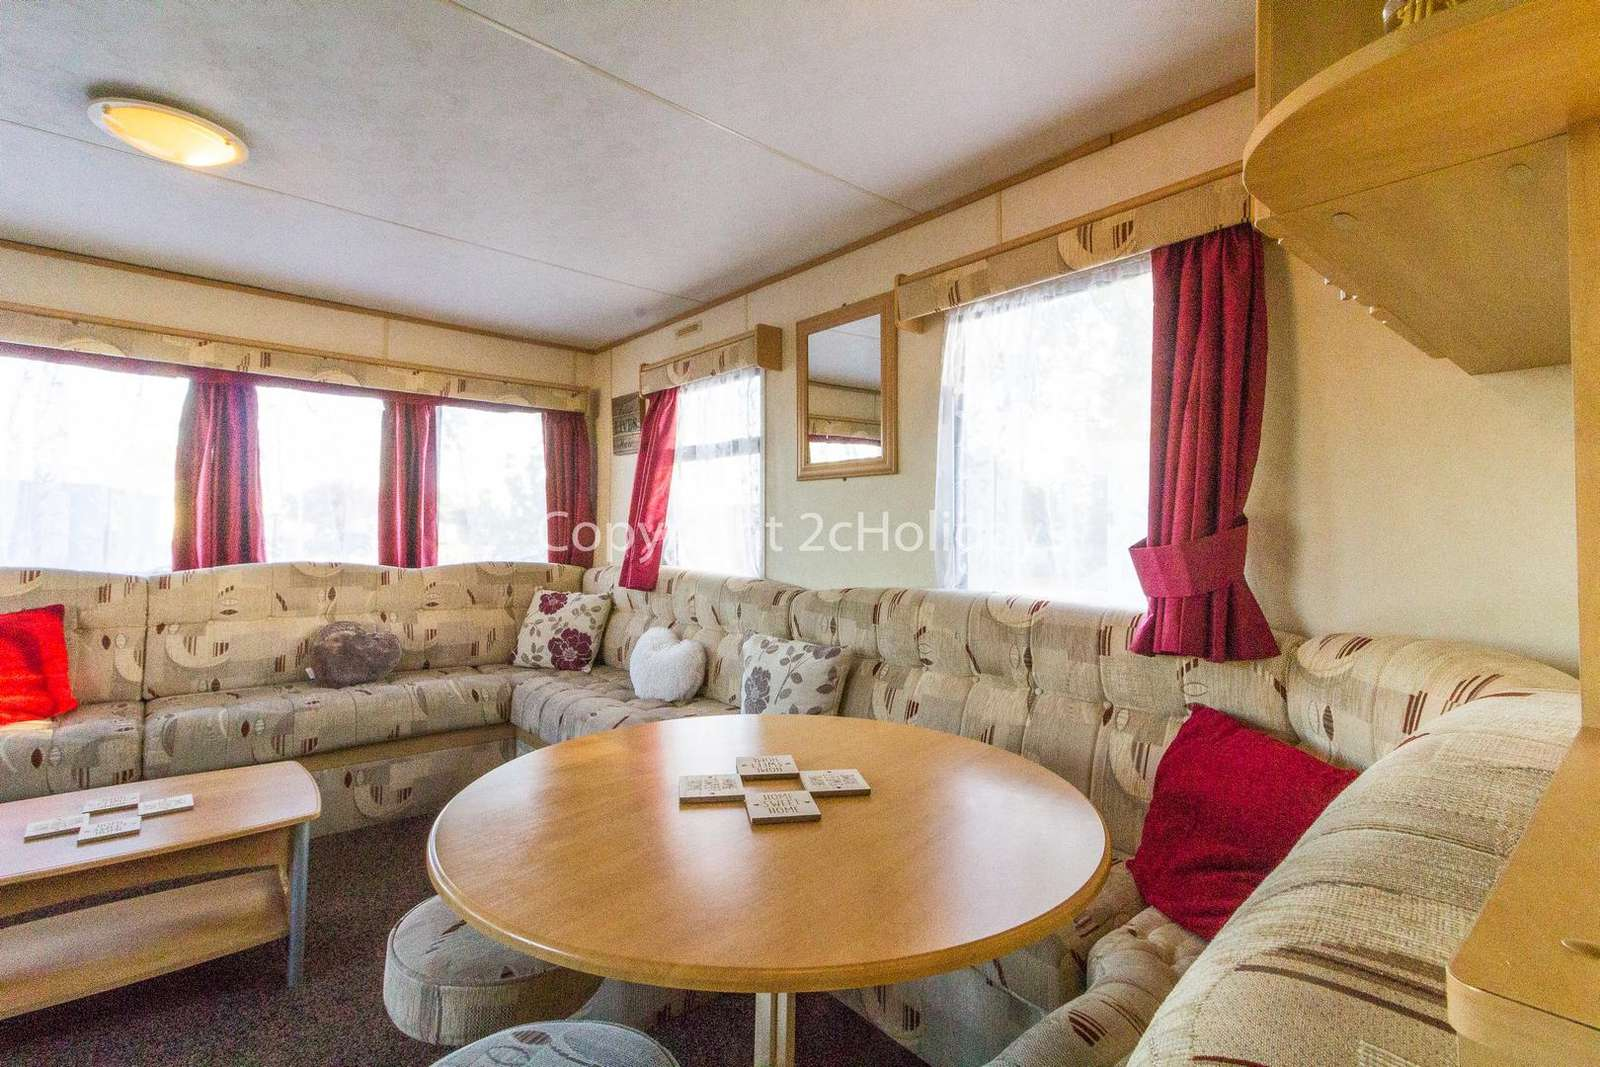 Come and stay in this private accommodation at Seawick Holiday Park